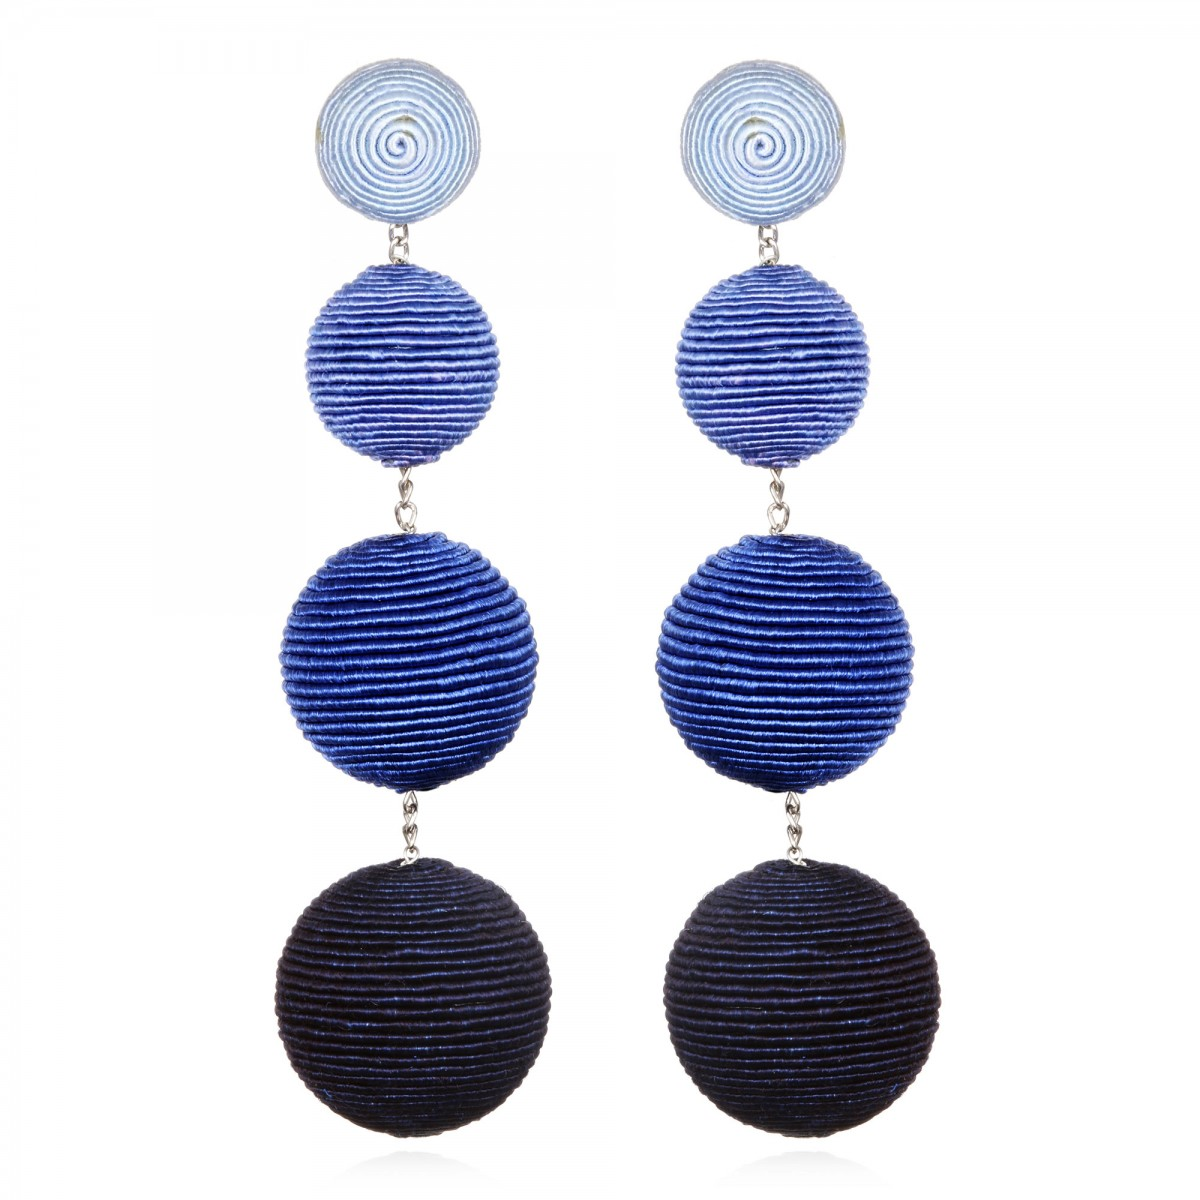 Blue Ombre Bon Bon Earrings by SUZANNA DAI